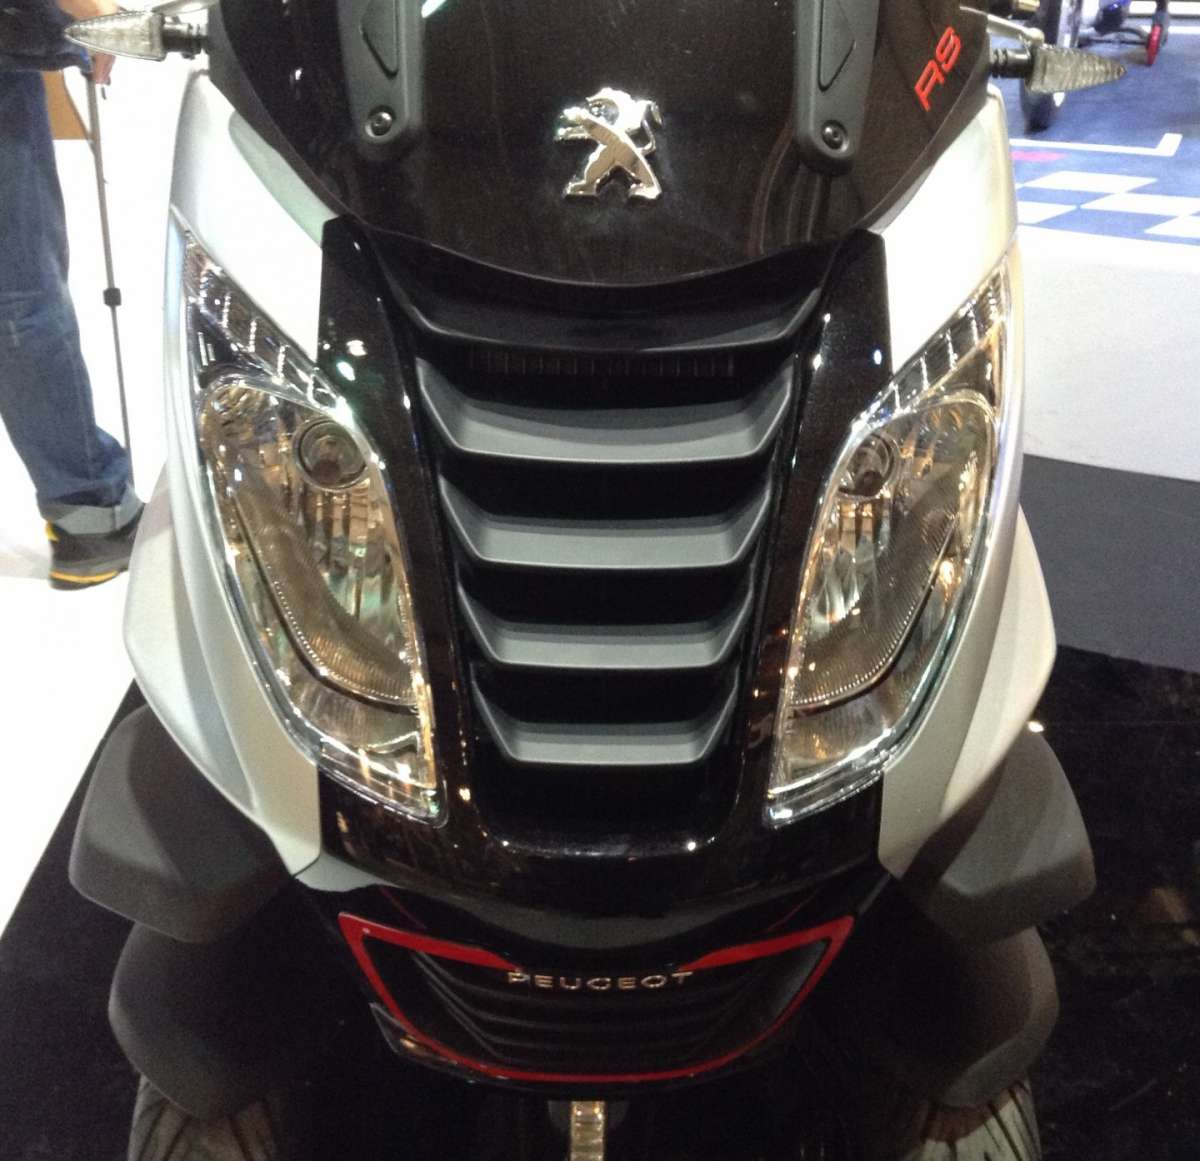 Peugeot Metropolis RS all'EICMA